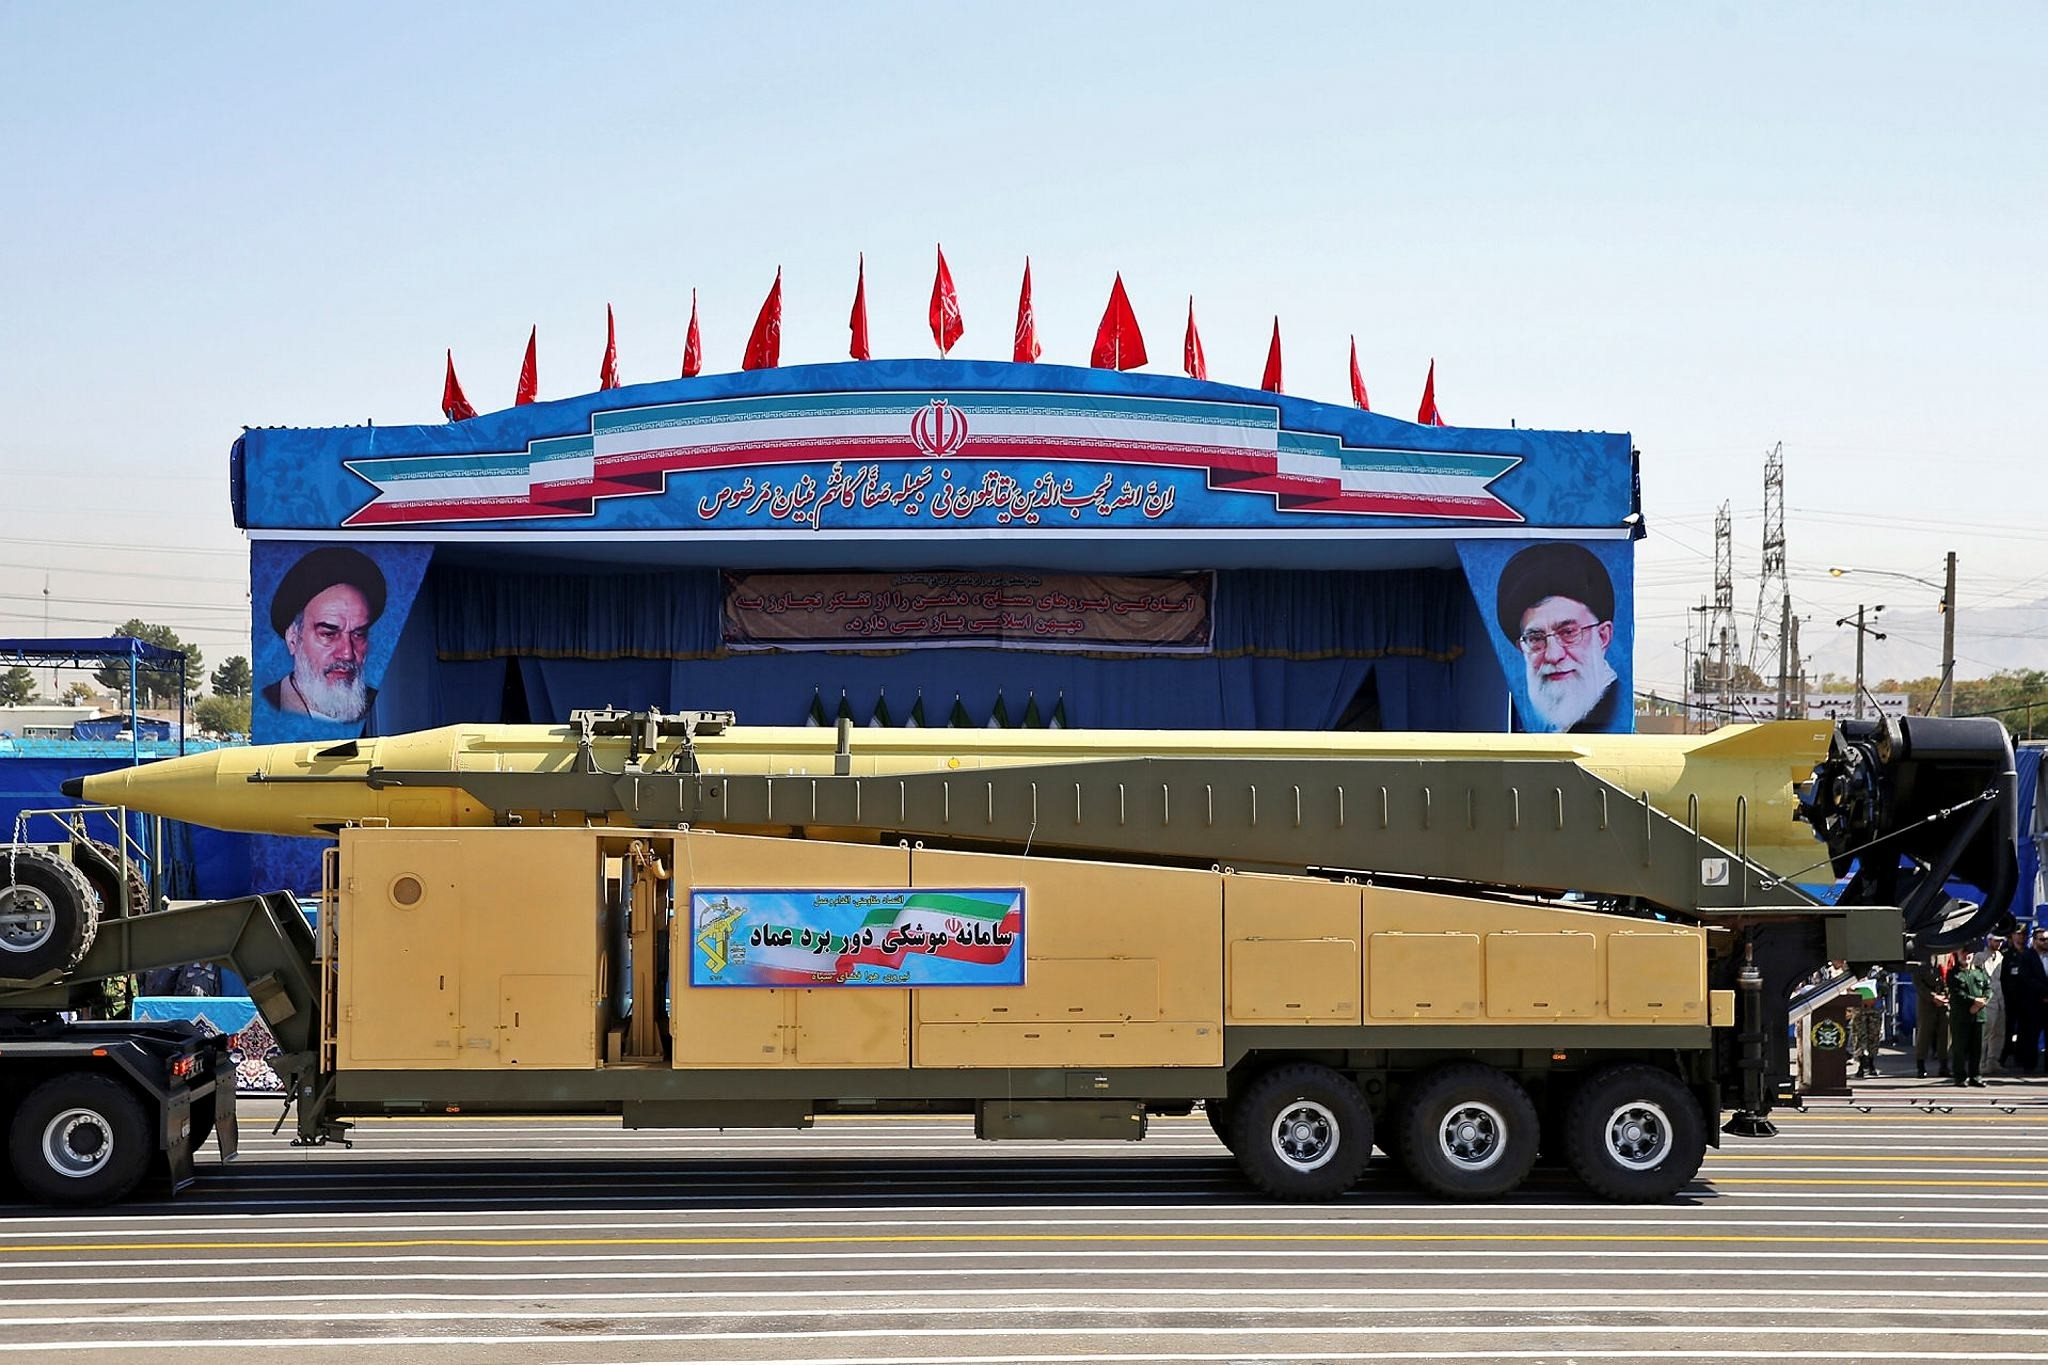 In this Sept. 21, 2016 file photo, an Emad long-range ballistic surface-to-surface missile is displayed by the Revolutionary Guard during a military parade (AP Photo)